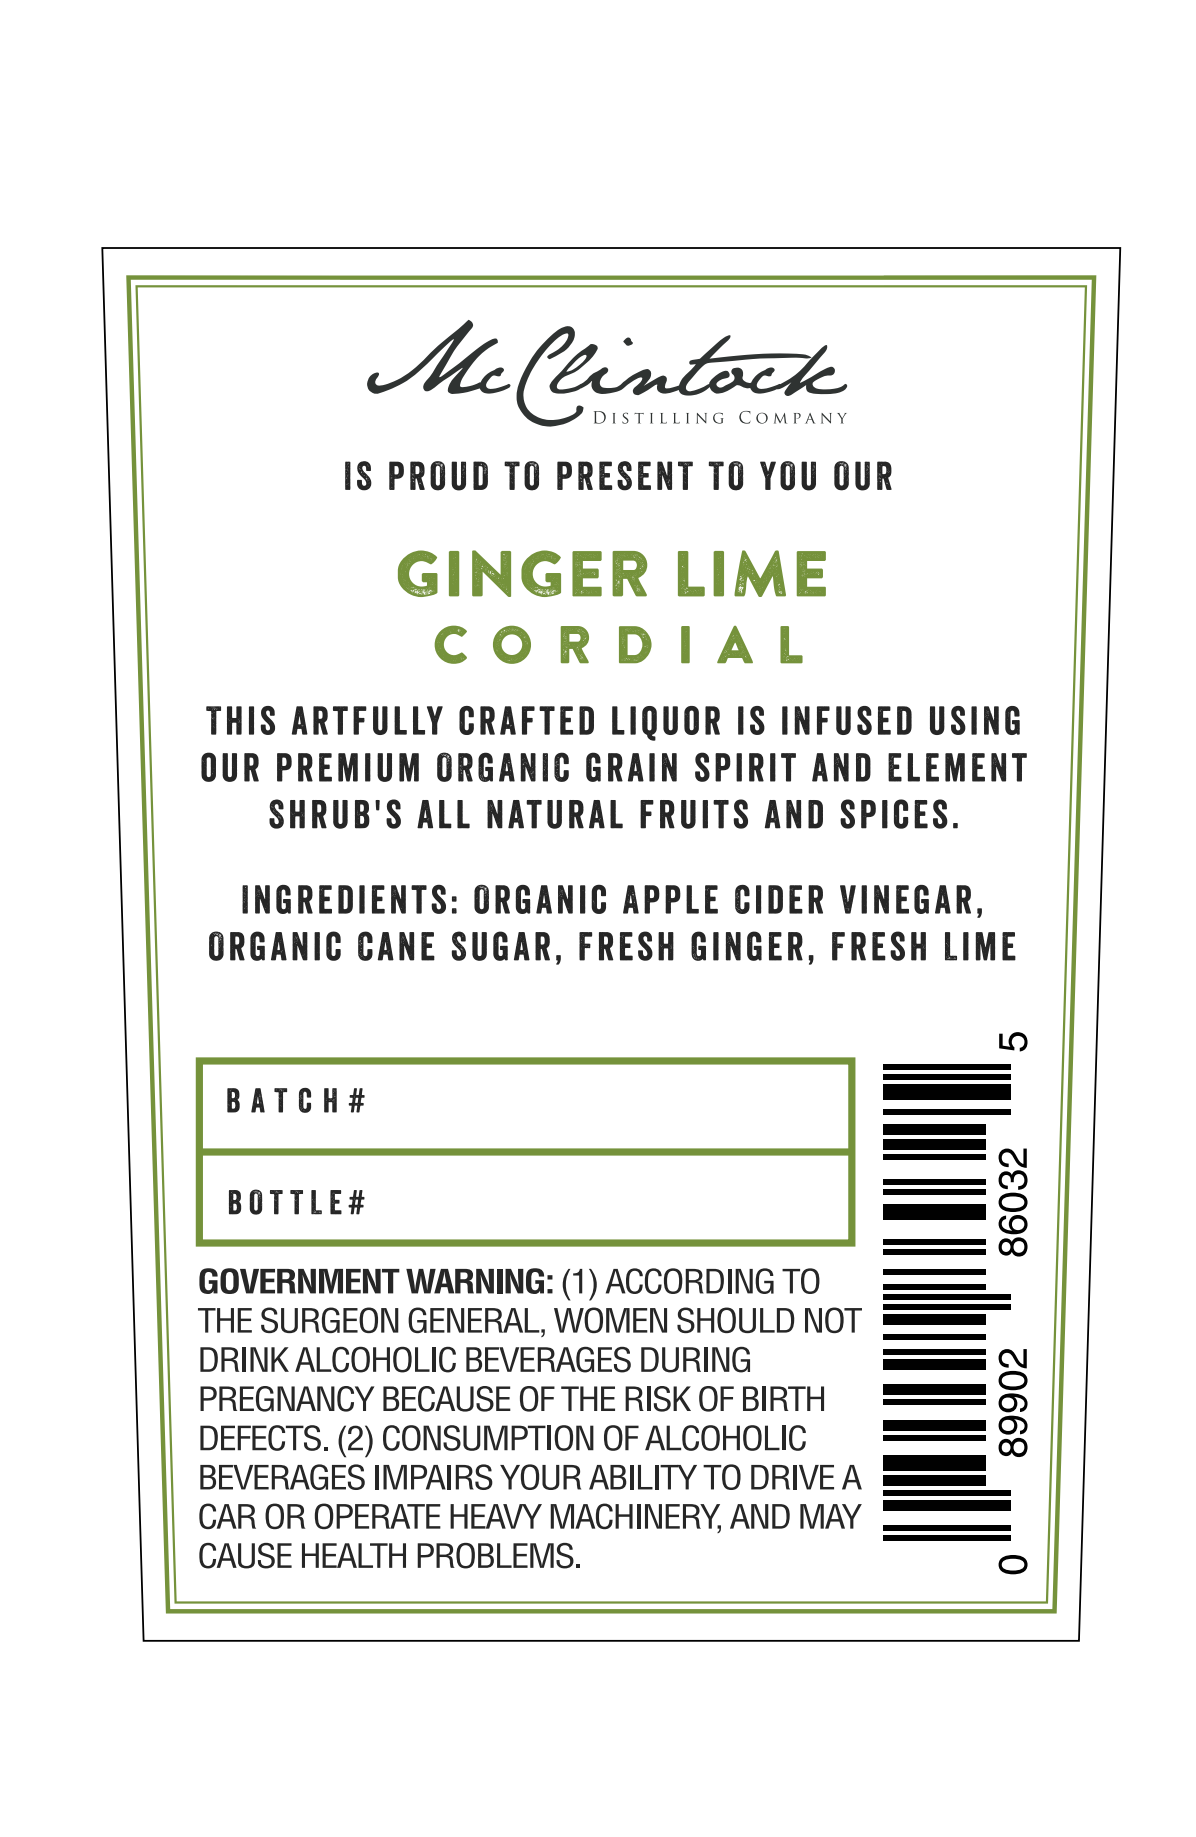 New Cordial (Ginger Lime)